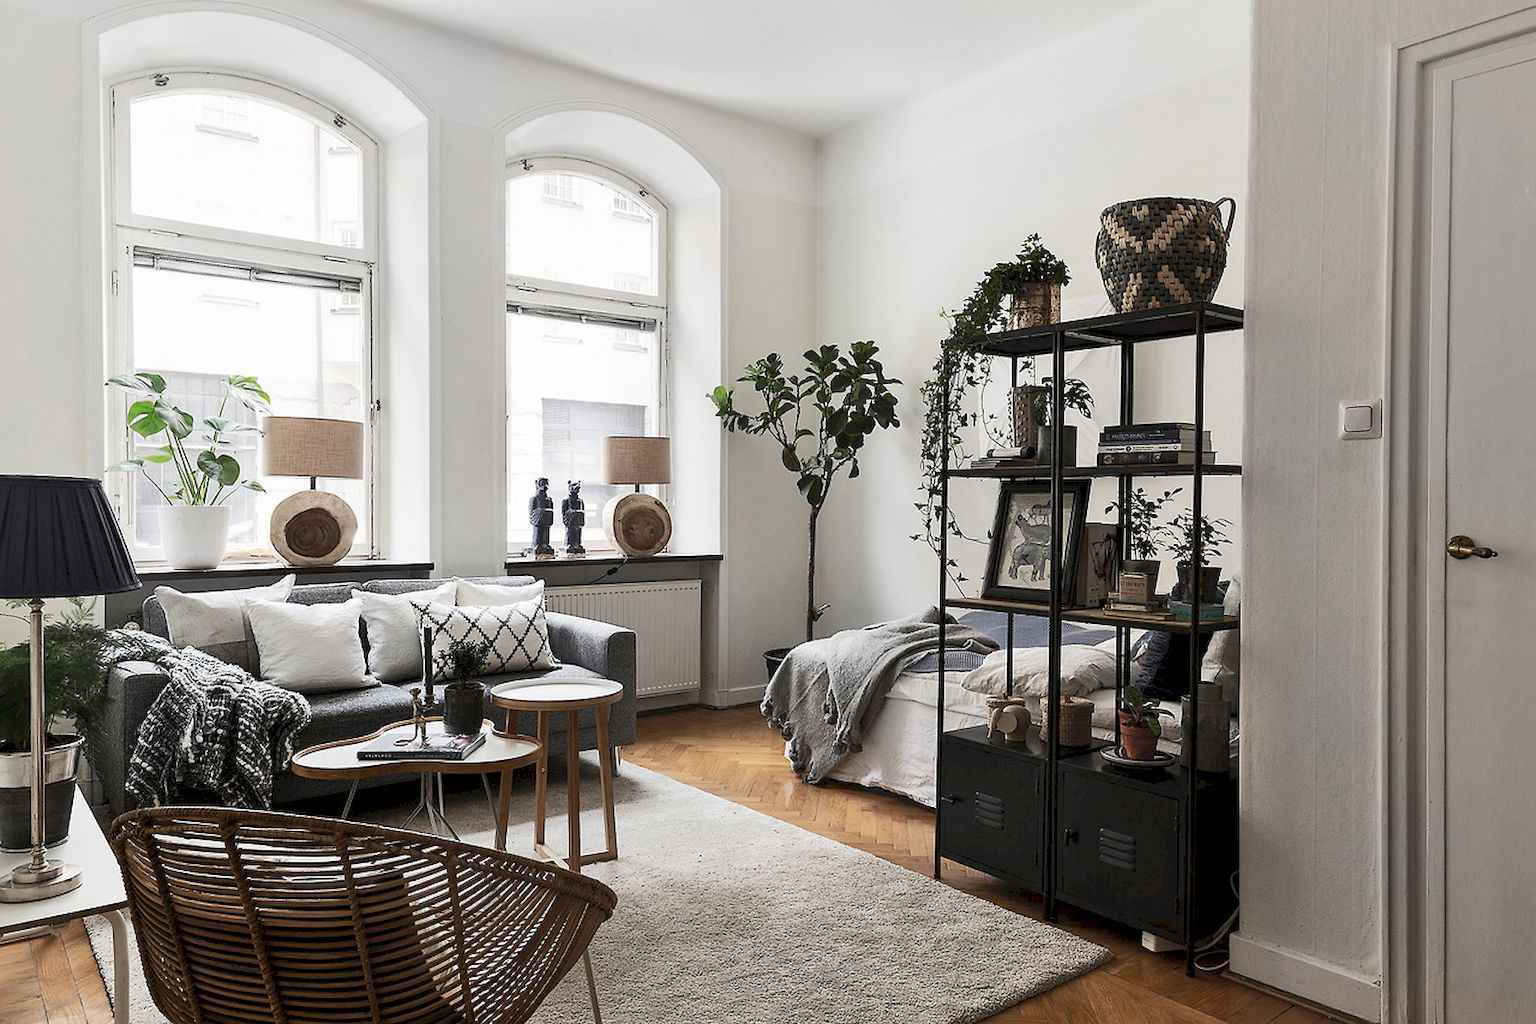 Small apartment studio decorating ideas on a budget (65)